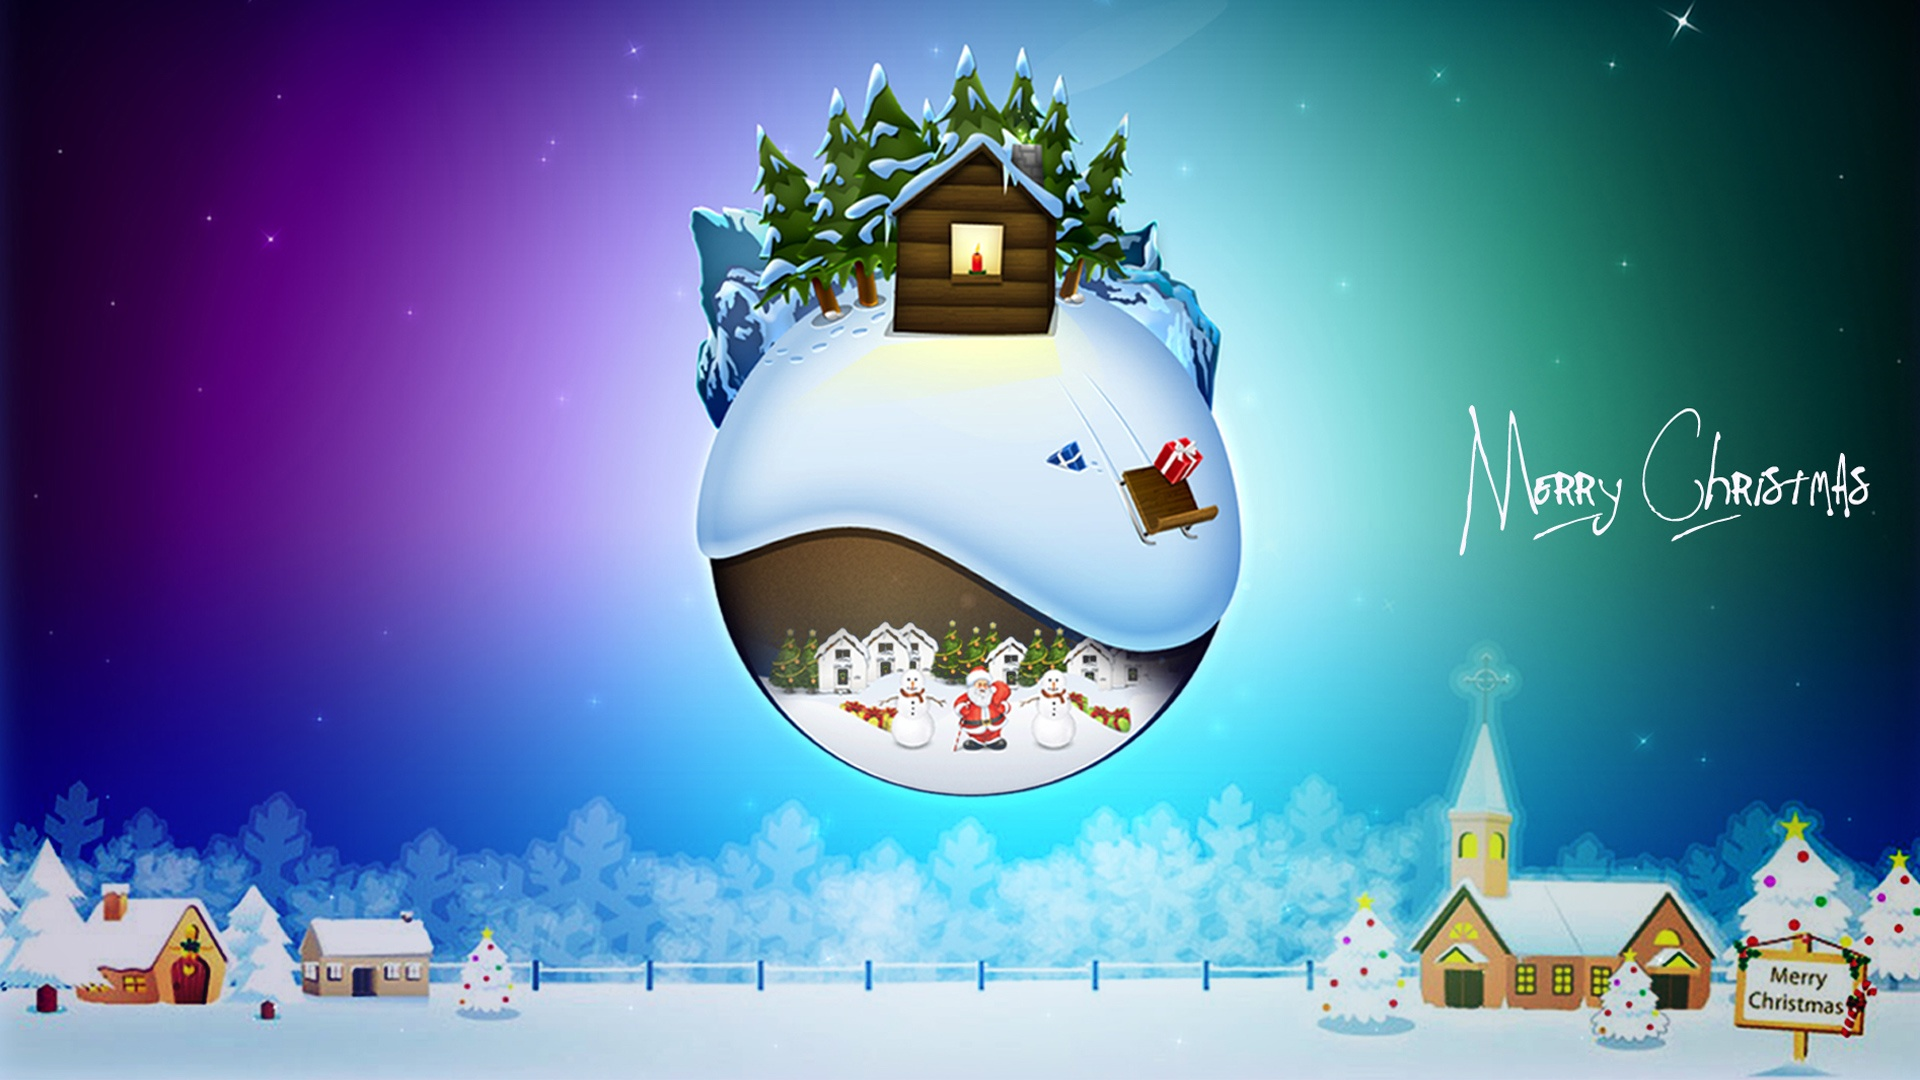 merry christmas wallpapers deco - hd desktop wallpapers | 4k hd